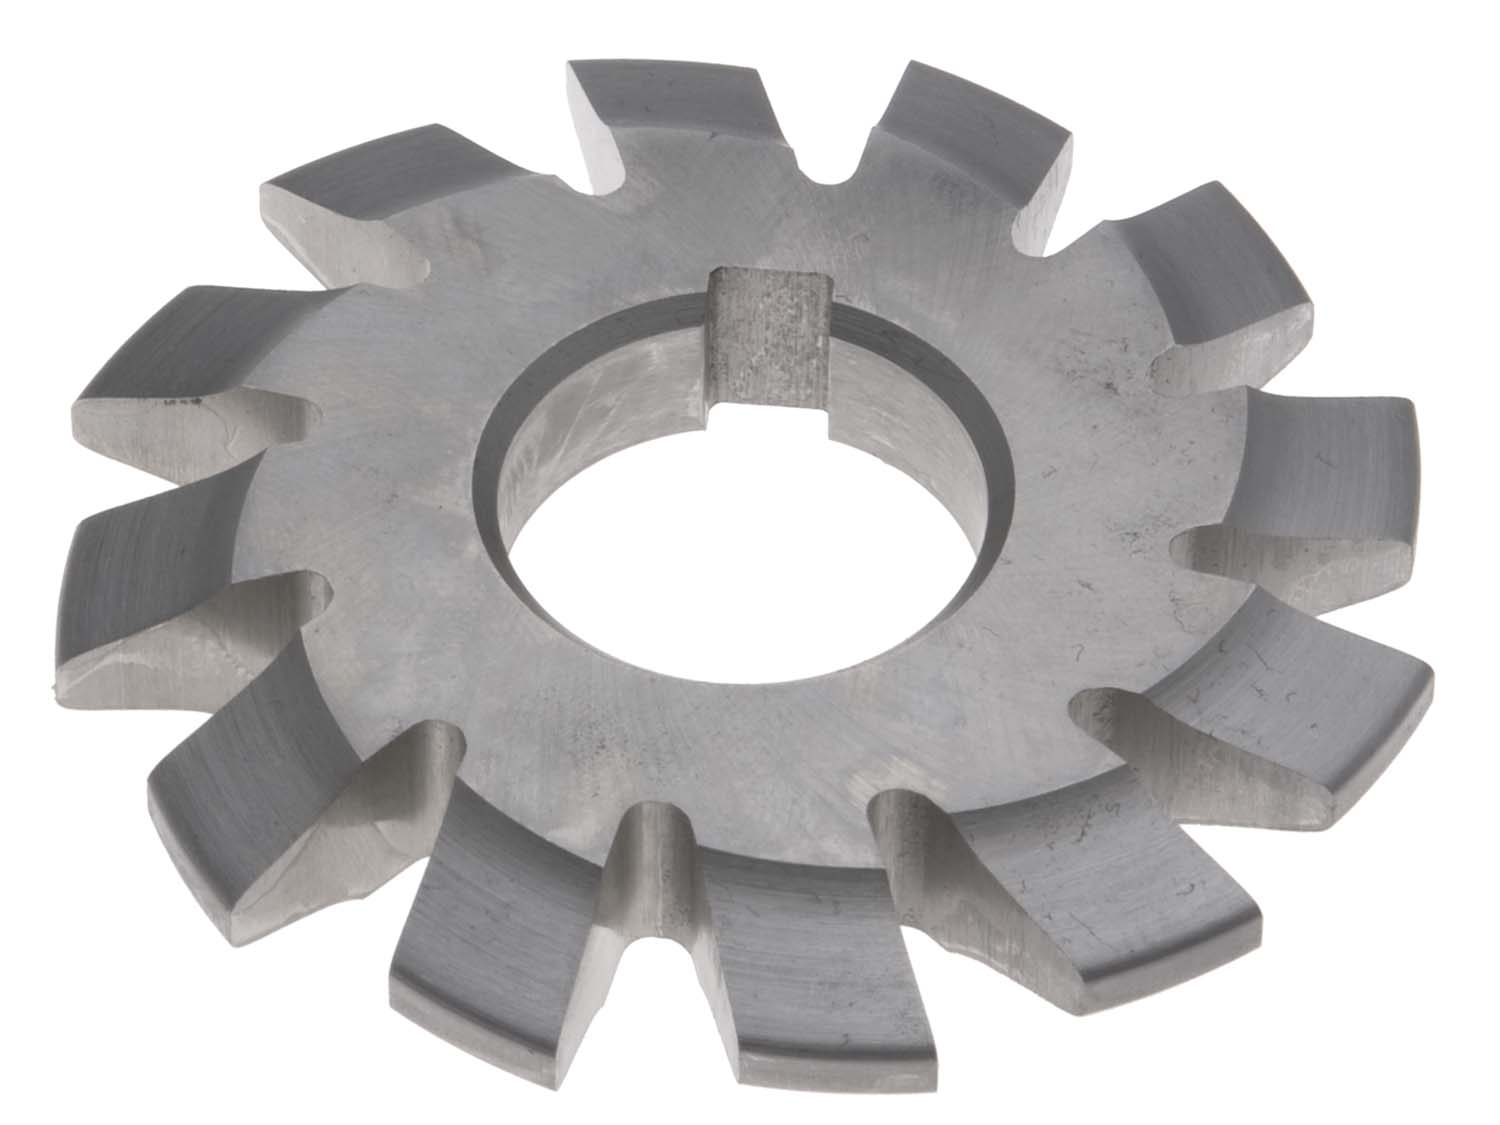 18 Diametral Pitch # 6  Involute Gear Cutter - 7/8 ID - 14-1/2 Degree Pressure Angle